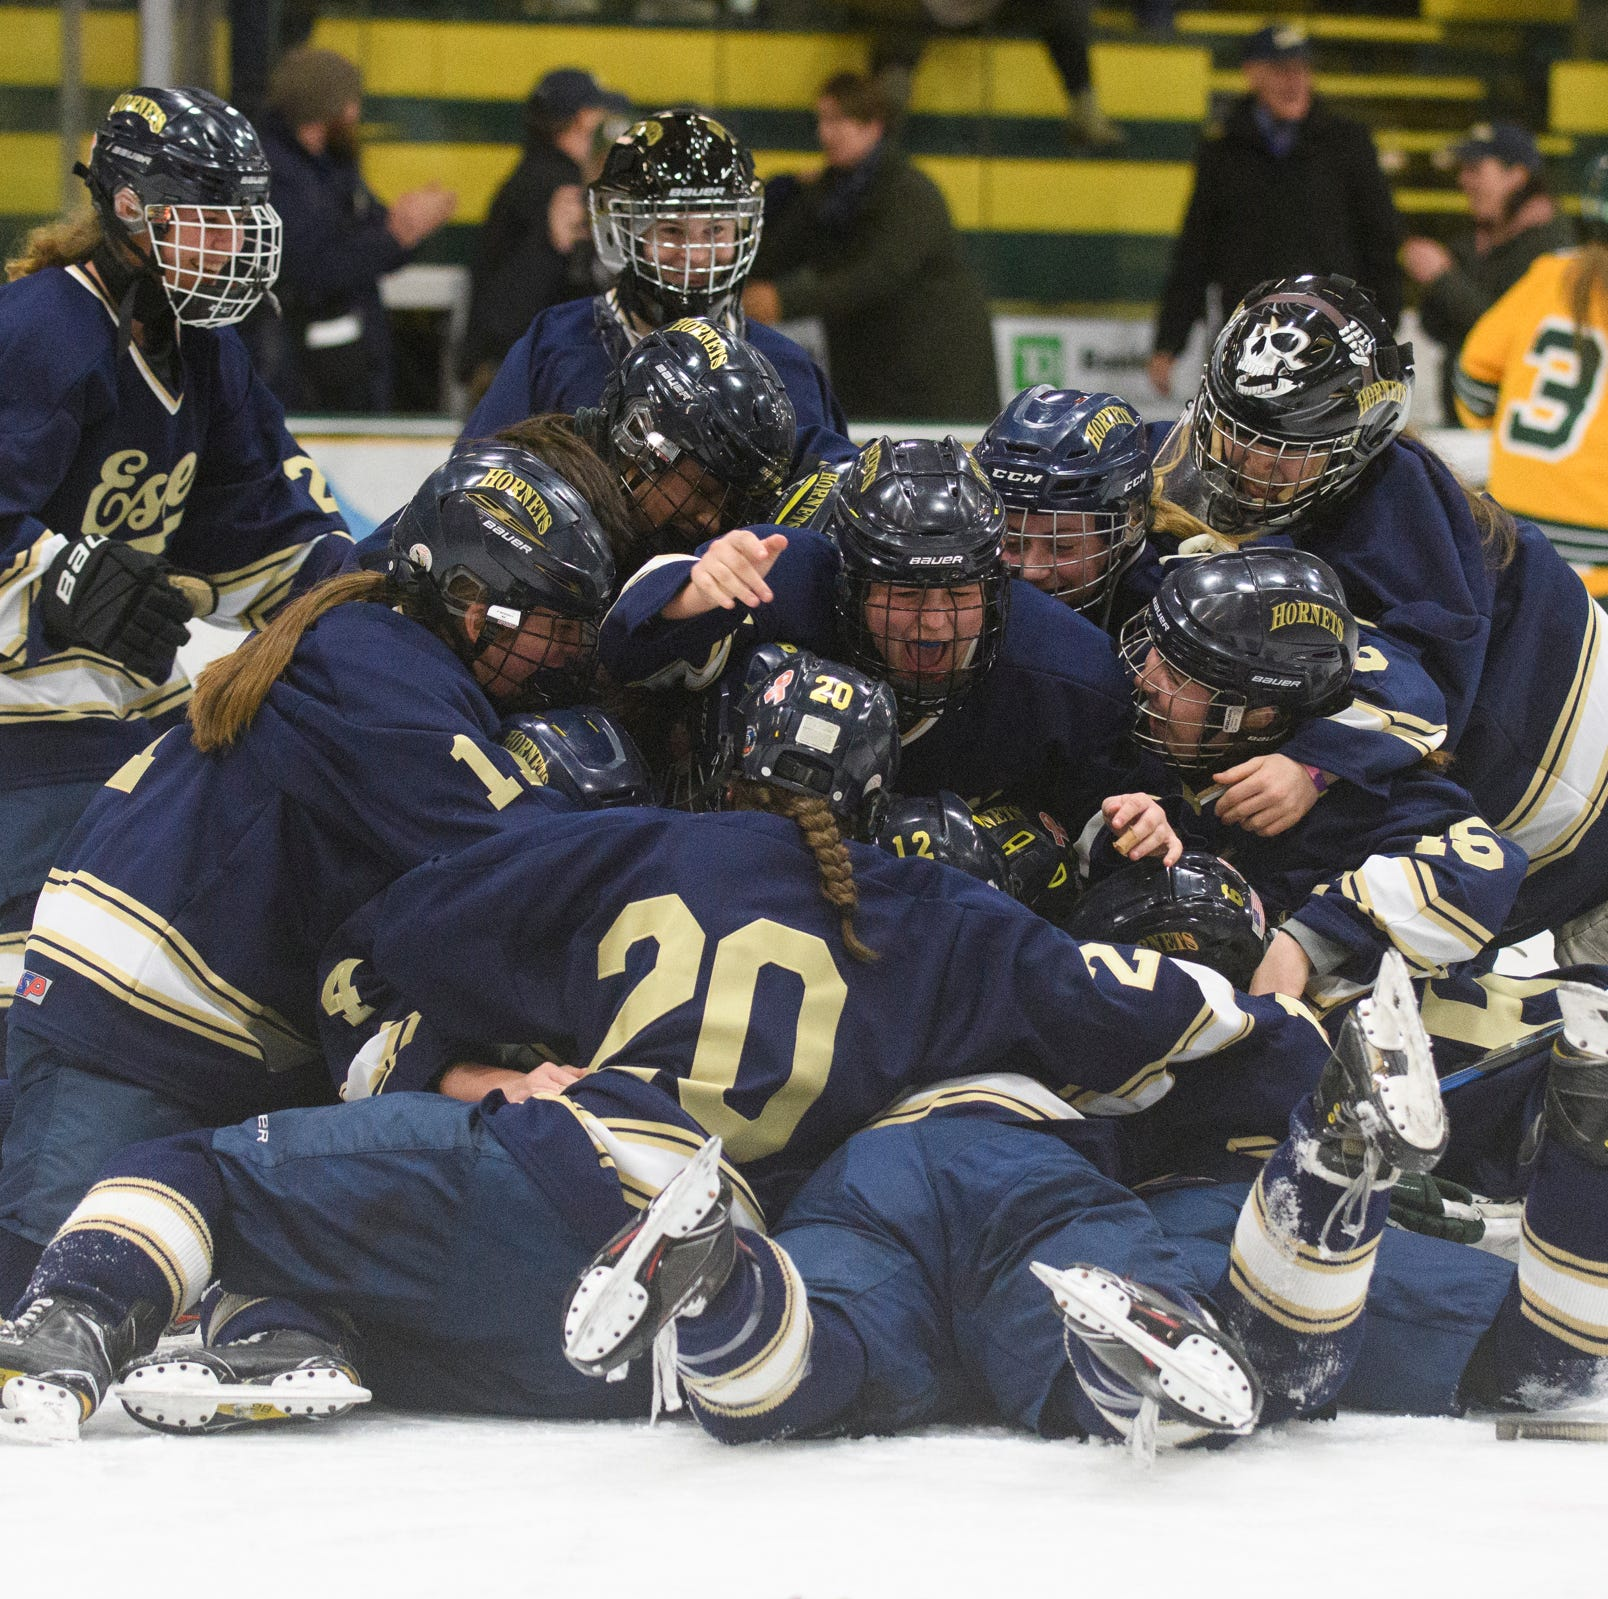 Essex dethrones BFA for Division I girls hockey crown